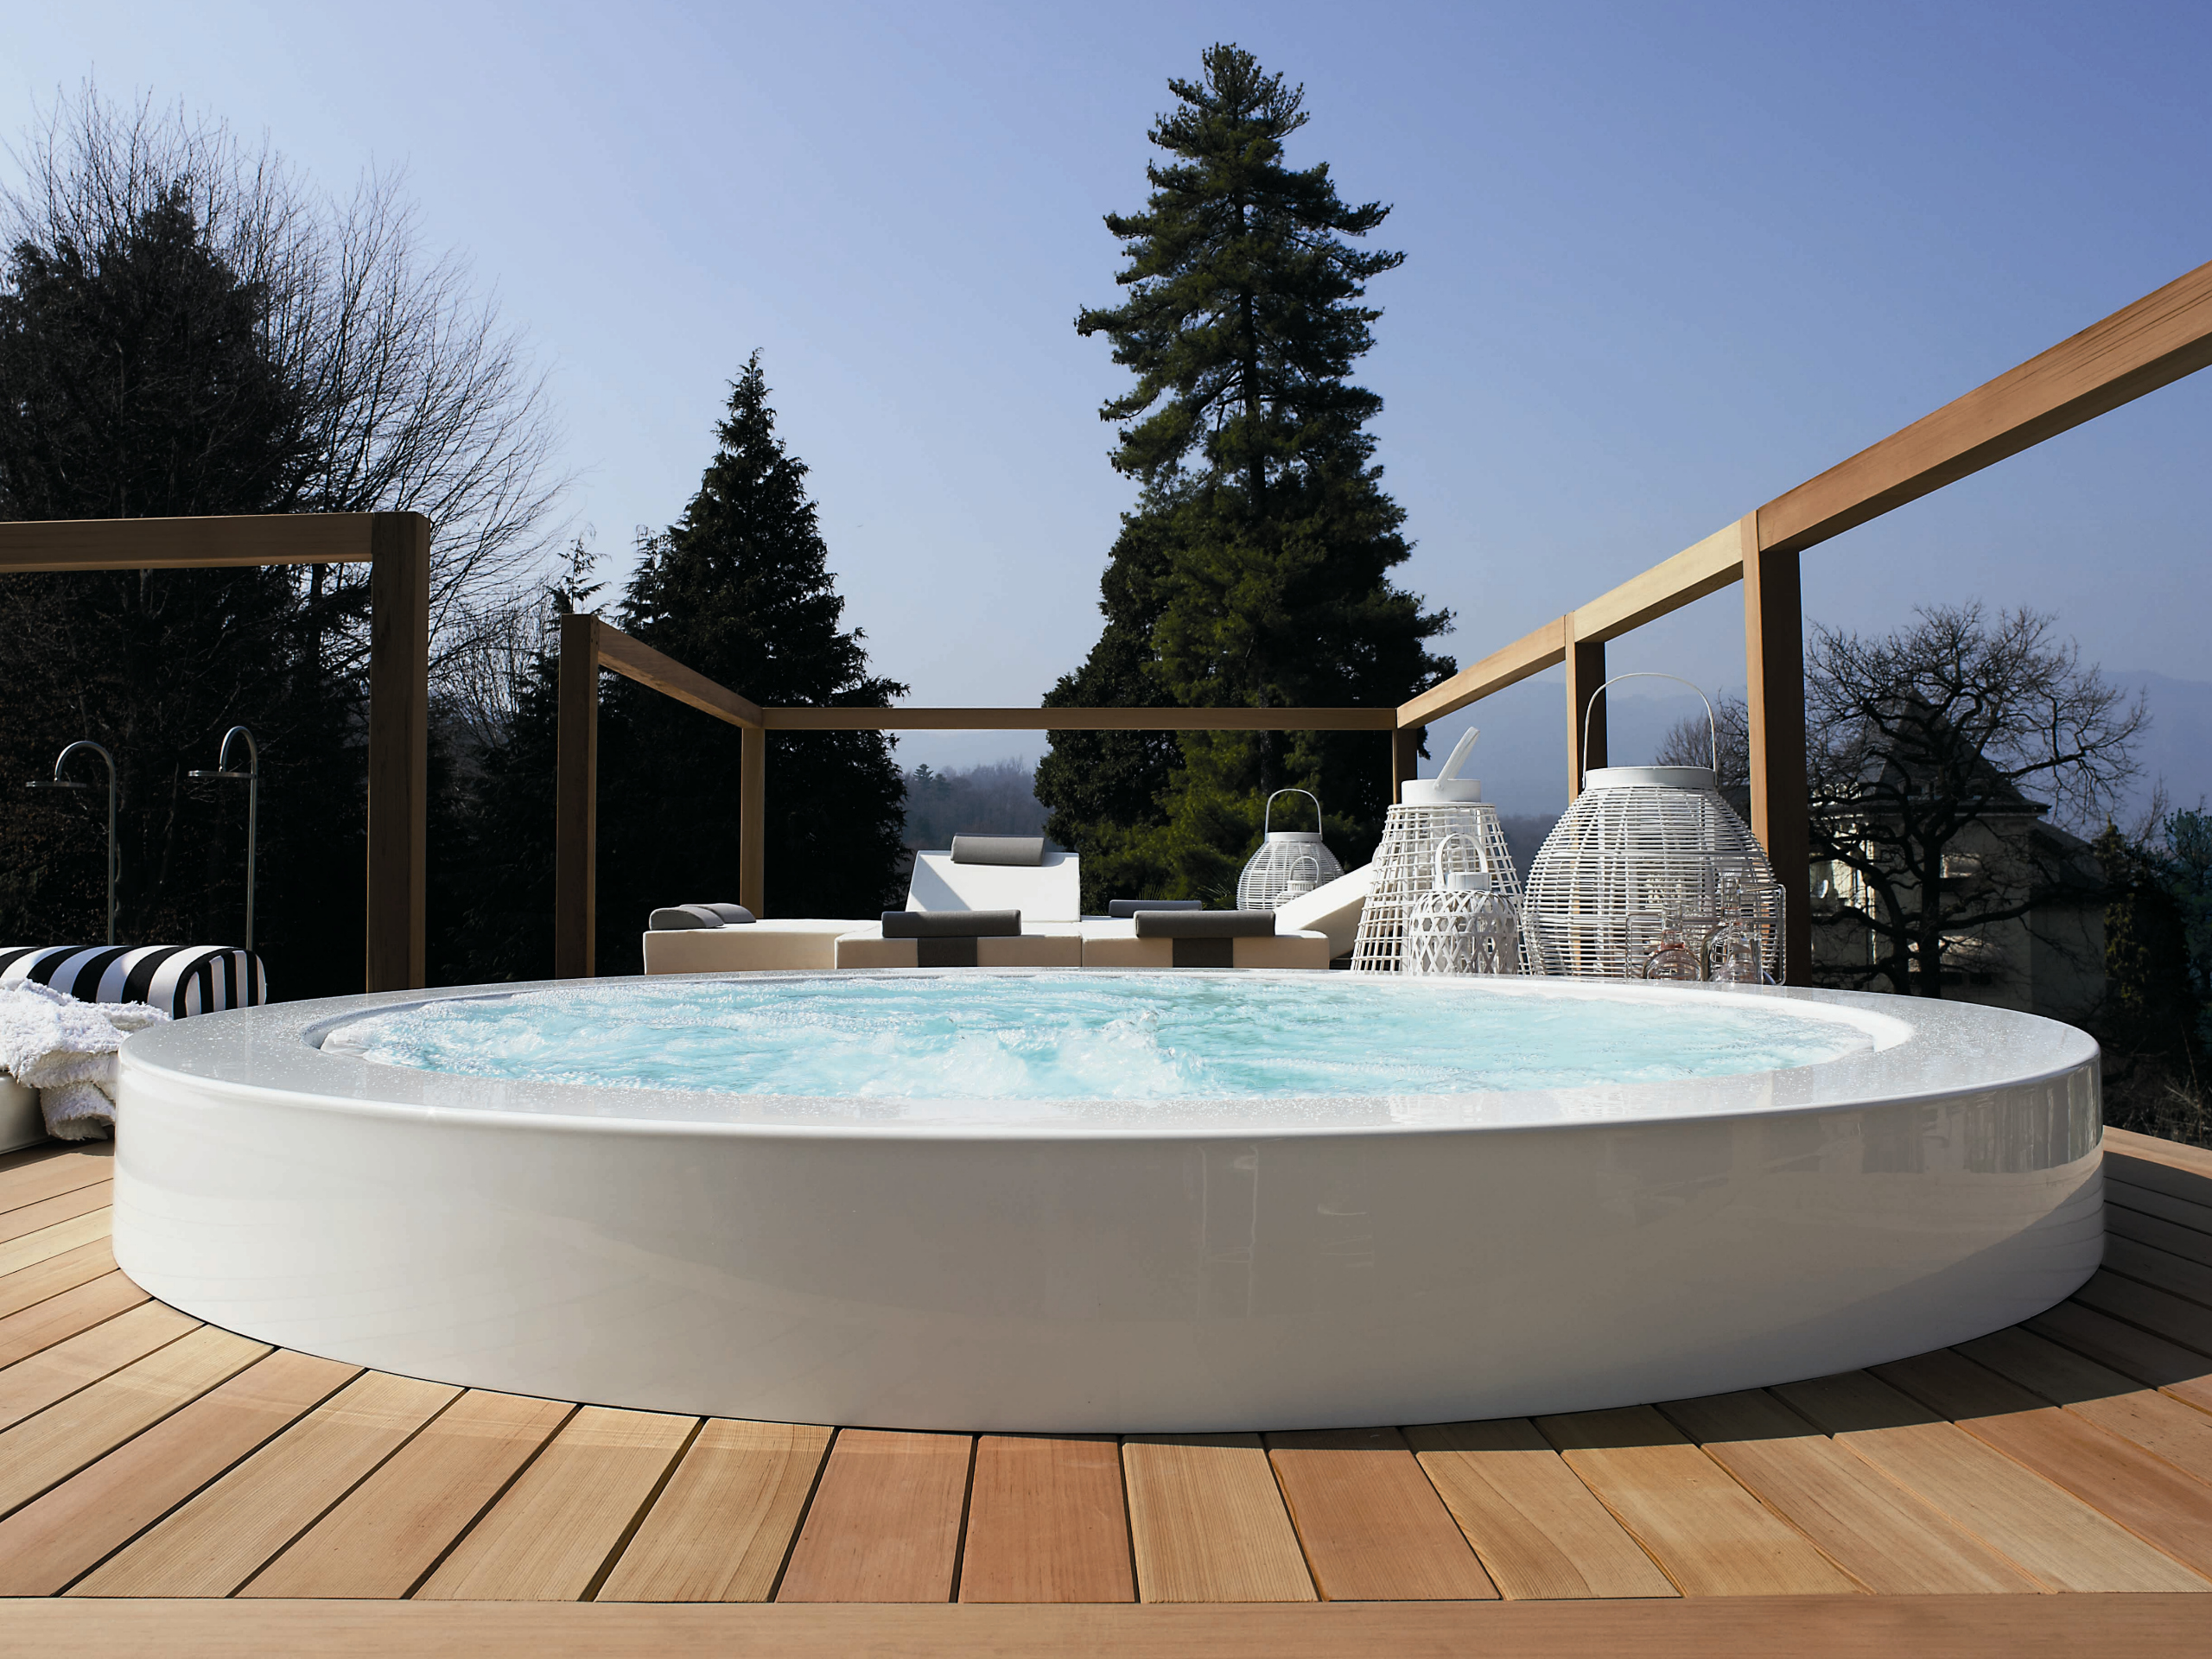 overflow outdoor hot tub minipool built in hot tub by kos. Black Bedroom Furniture Sets. Home Design Ideas